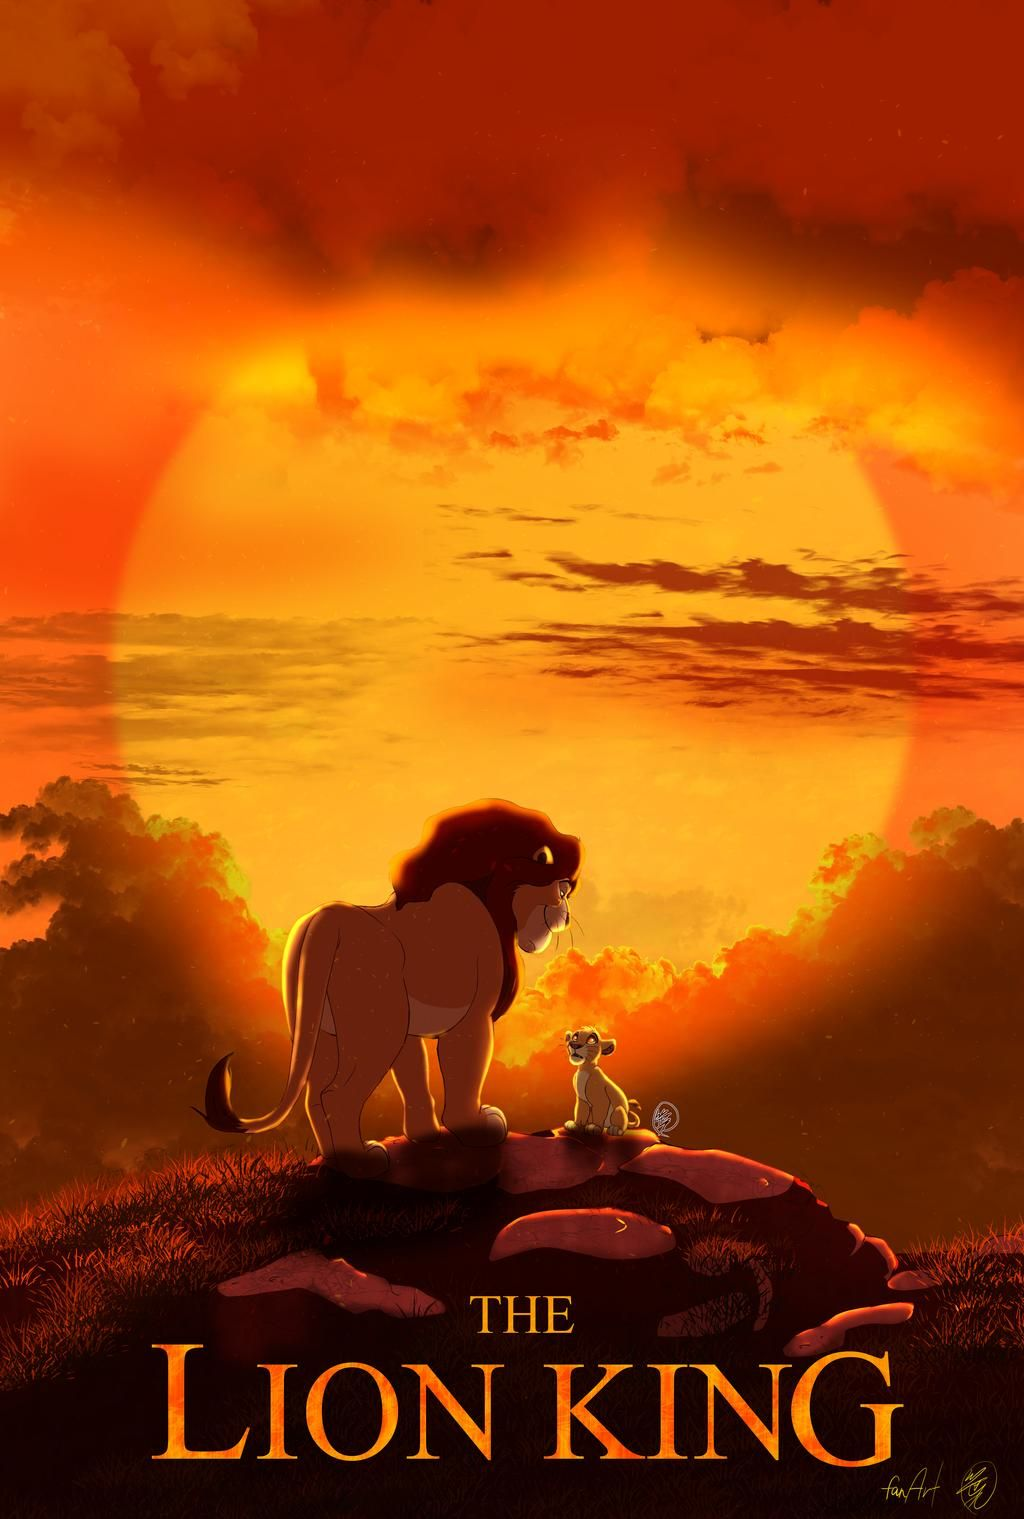 2019thelionking Poster Animation Version By Sasamaru Lion On Deviantart Lion King Pictures Lion King Poster Lion King Movie